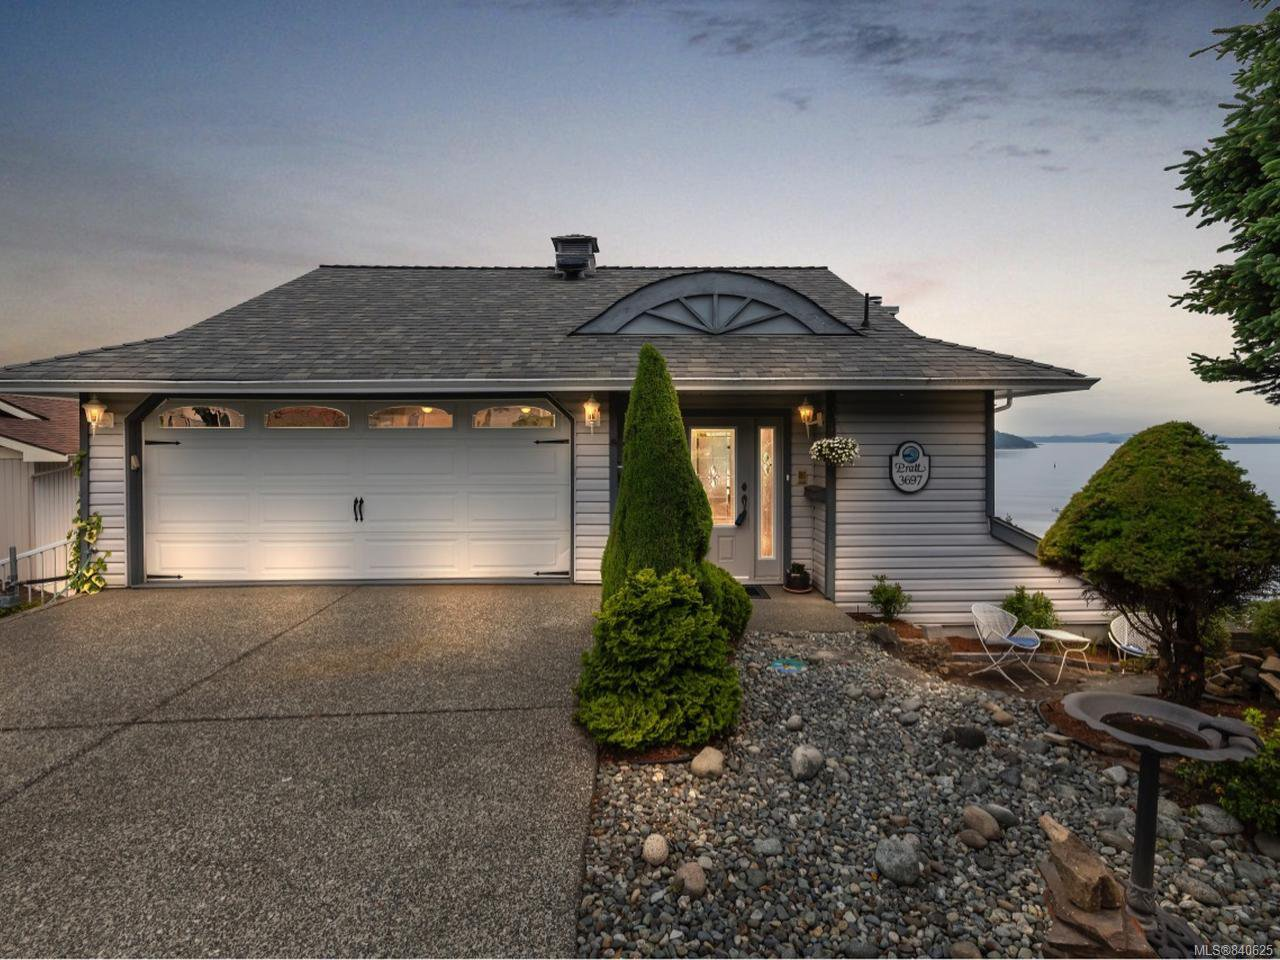 Main Photo: 3697 Marine Vista in COBBLE HILL: ML Cobble Hill Single Family Detached for sale (Malahat & Area)  : MLS®# 840625